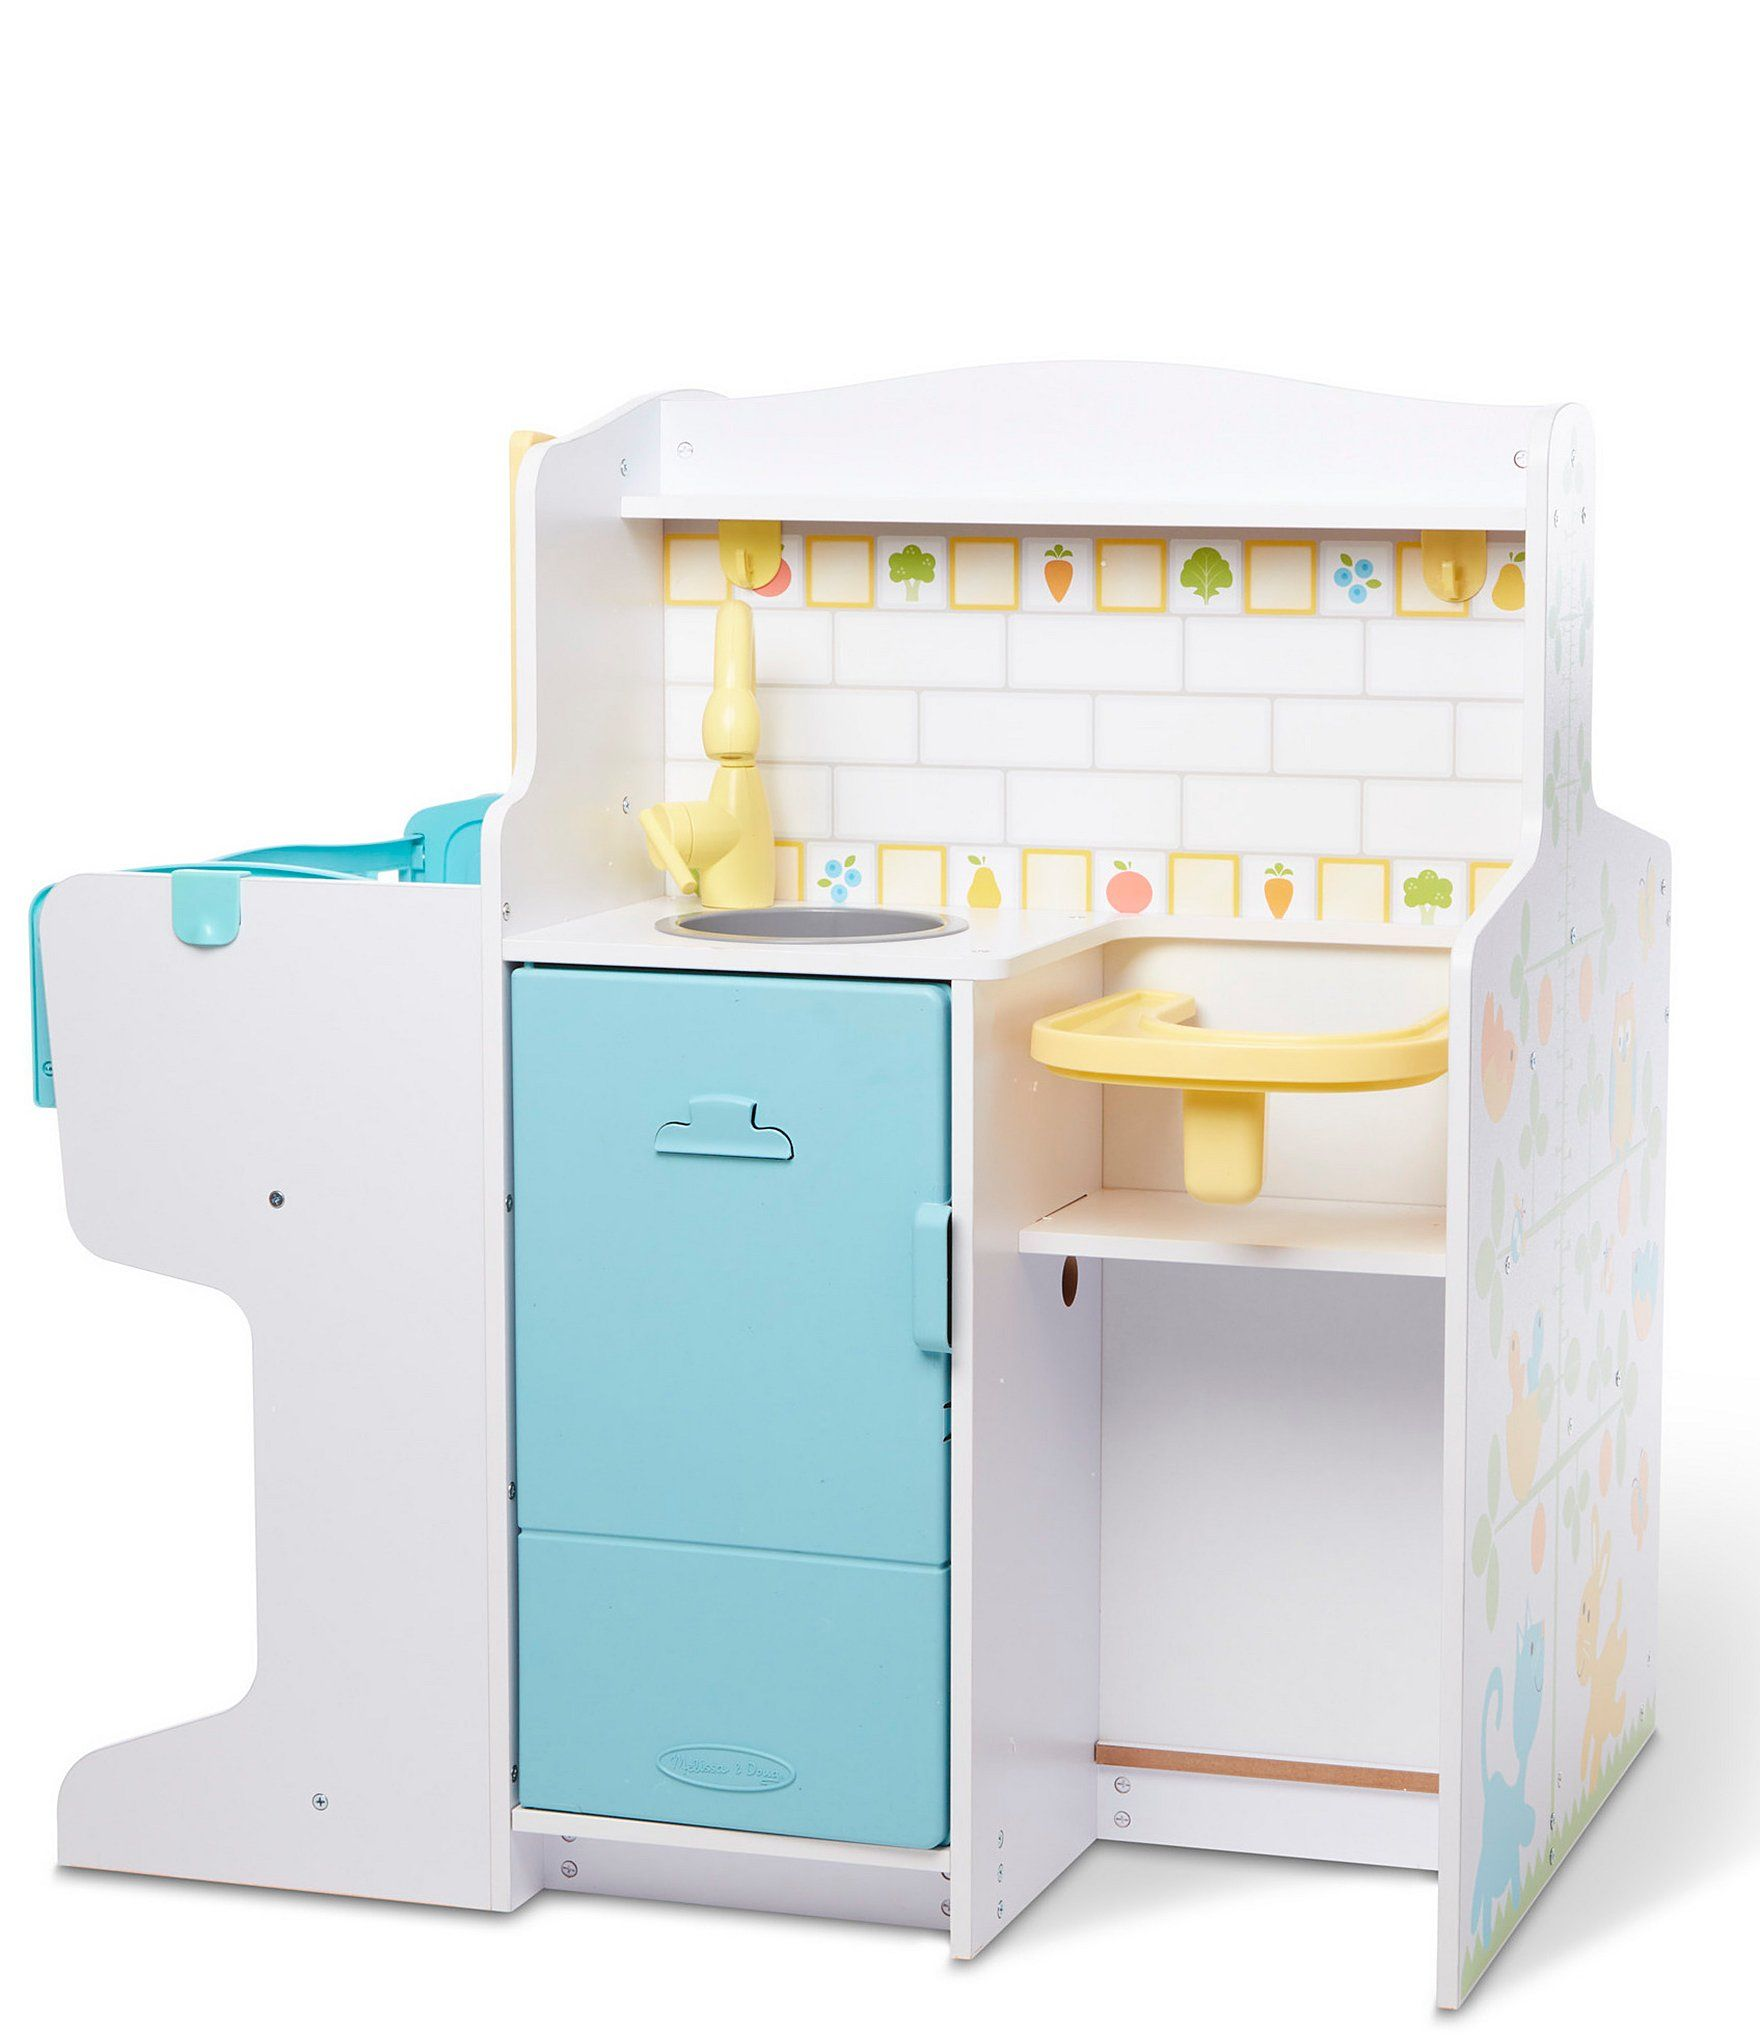 Melissa & Doug Doll Care Play Center | Dillard's #dollcare